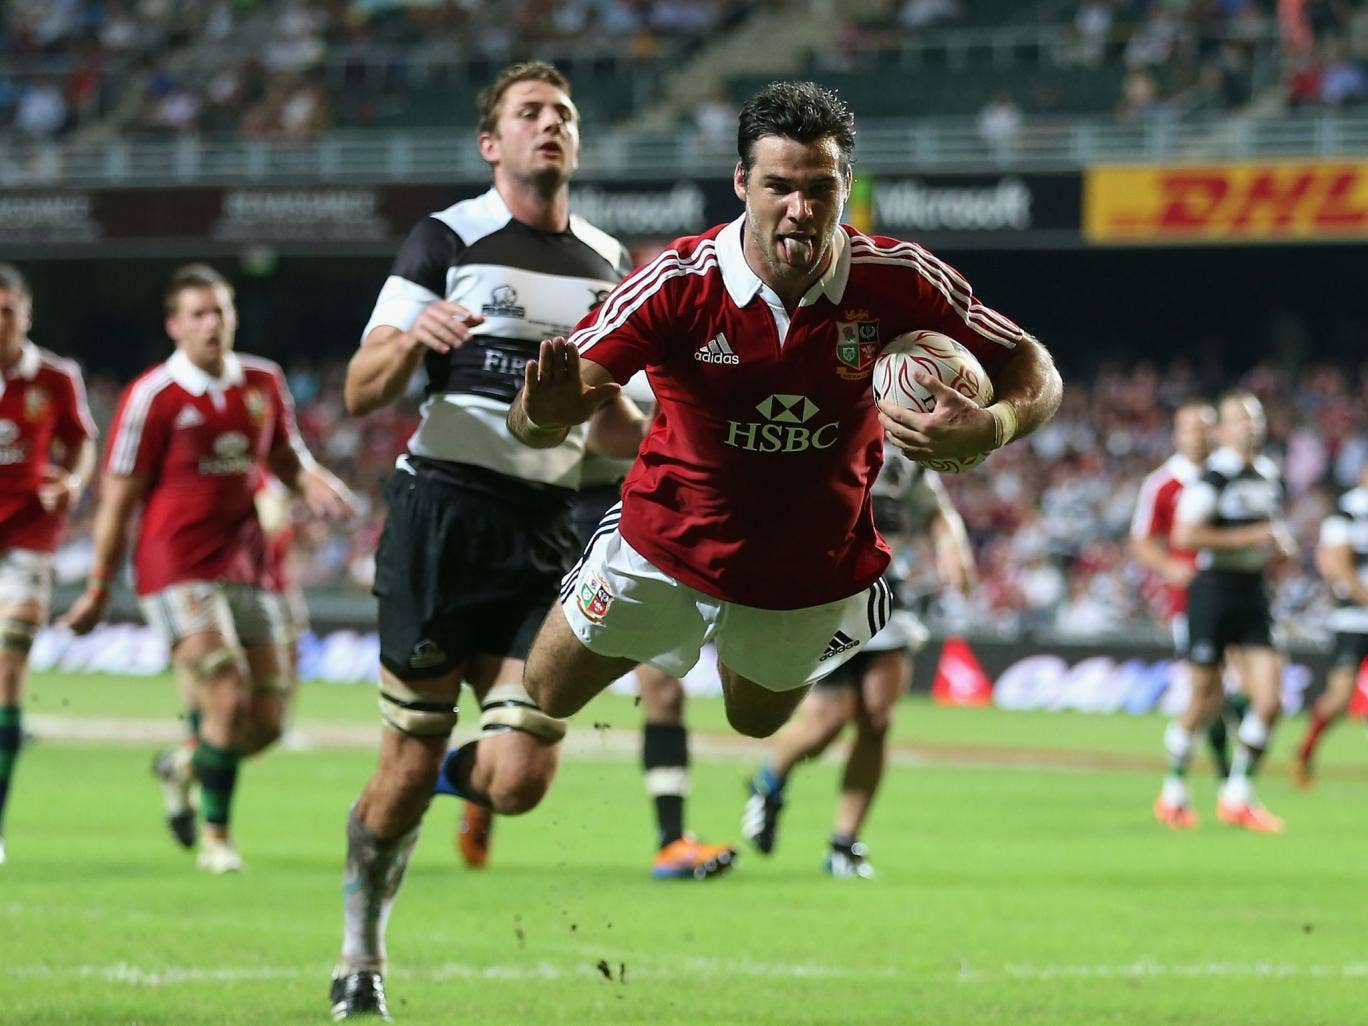 Tongue lashing: Mike Phillips scores a mouthwatering second try as the Lions open their summer tour with a 59-8 thrashing of the Barbarians in Hong Kong yesterday